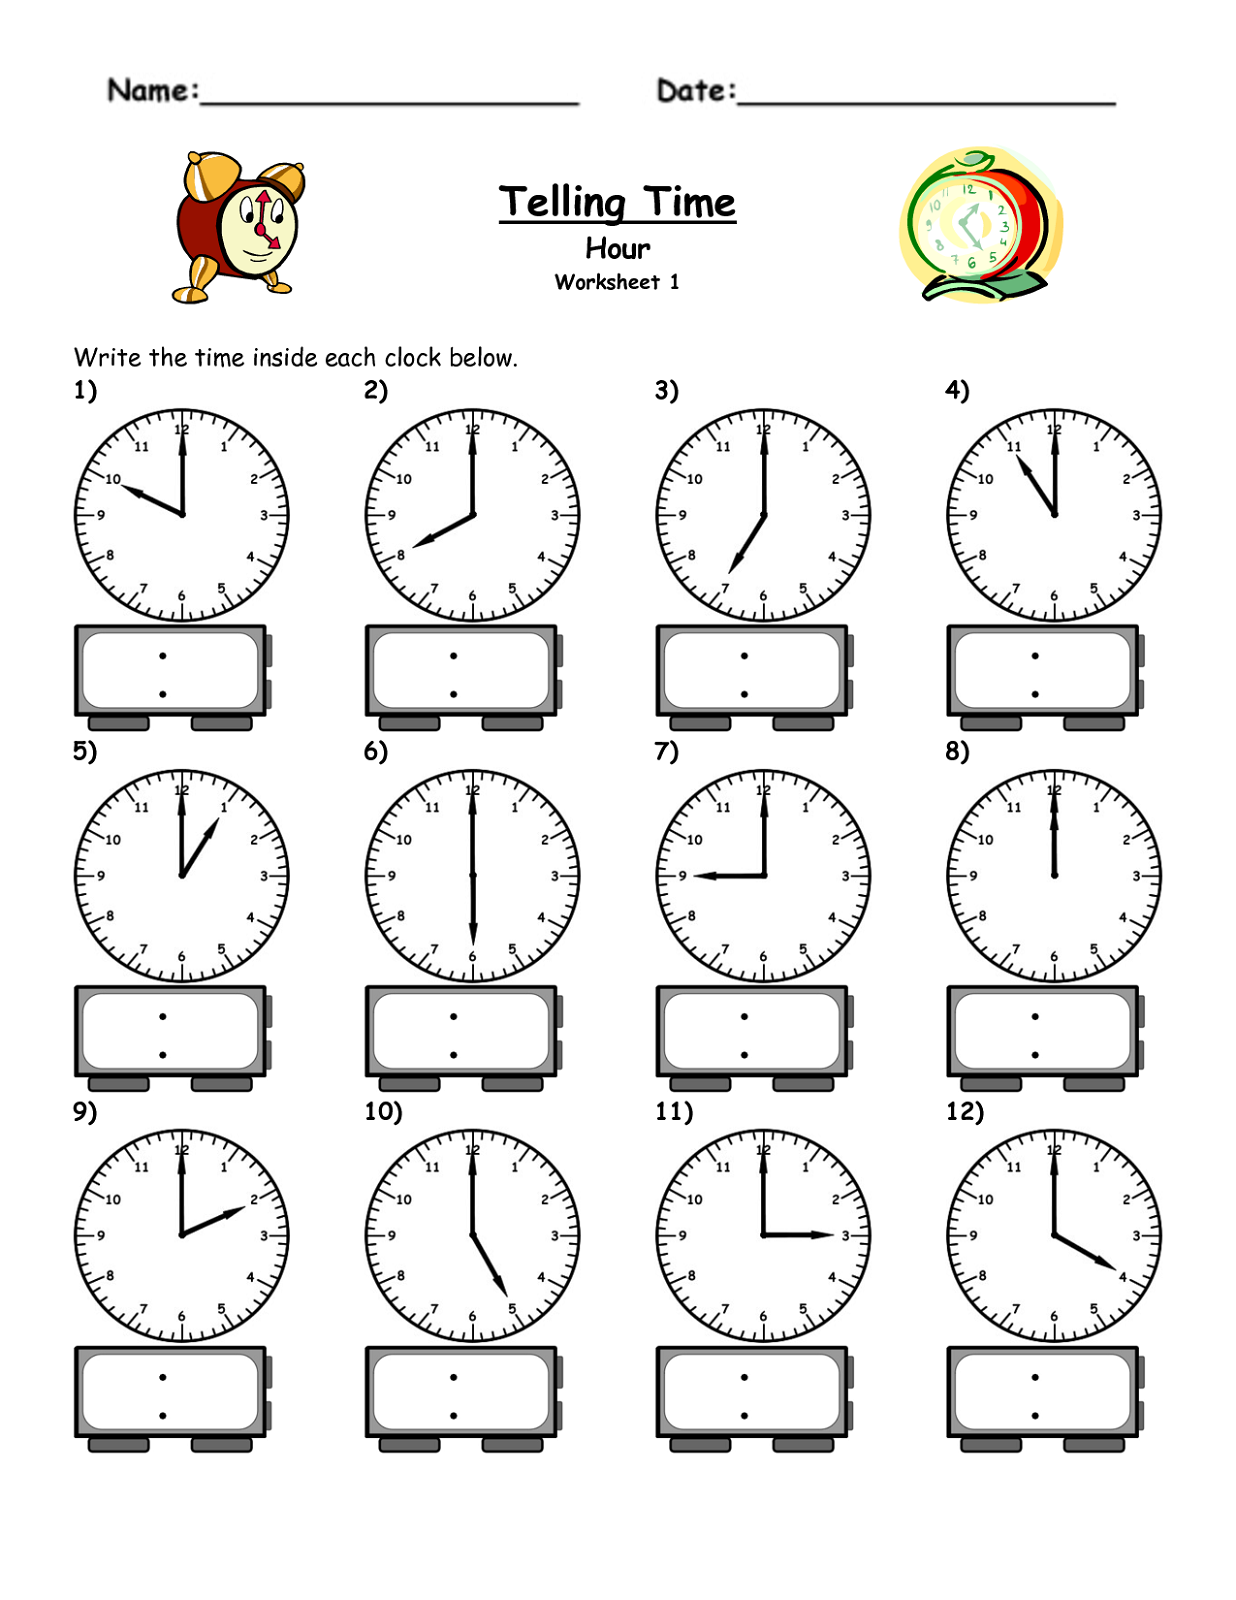 Worksheet Telling Time Printables worksheet telling time printables mikyu free preschool worksheets o easy elapsed activity shelter